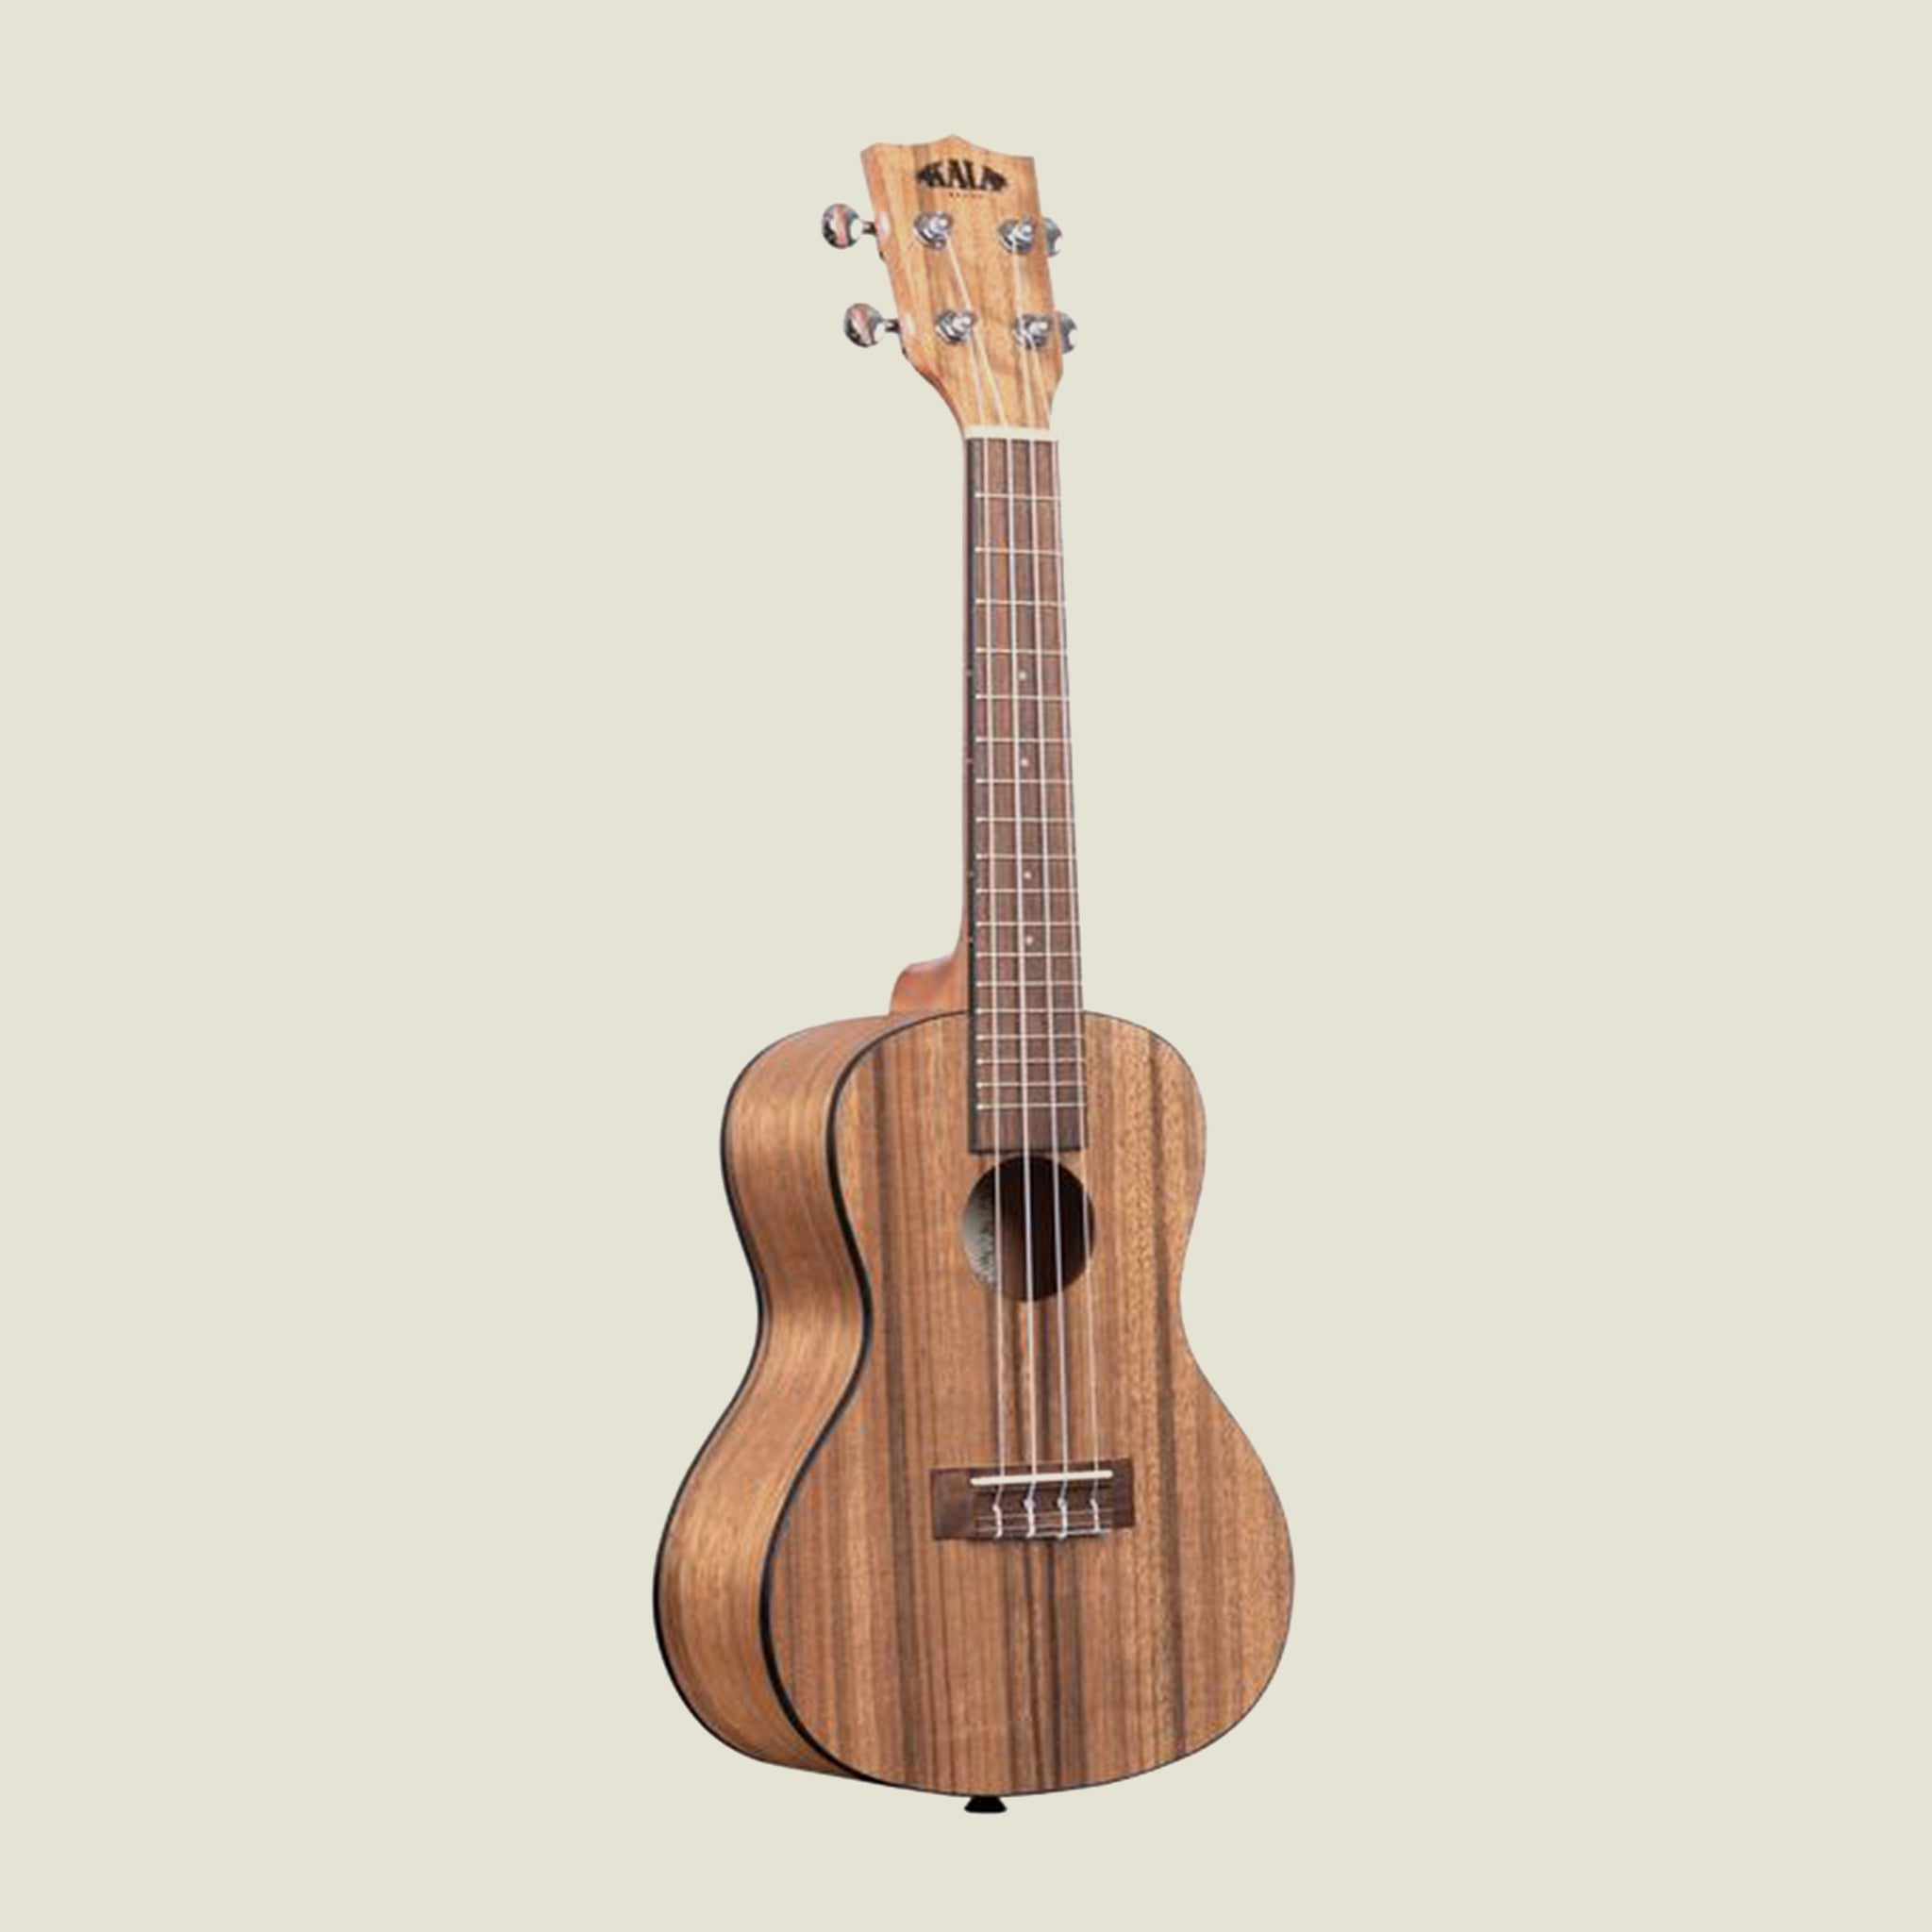 Pacific Walnut Concert Ukulele